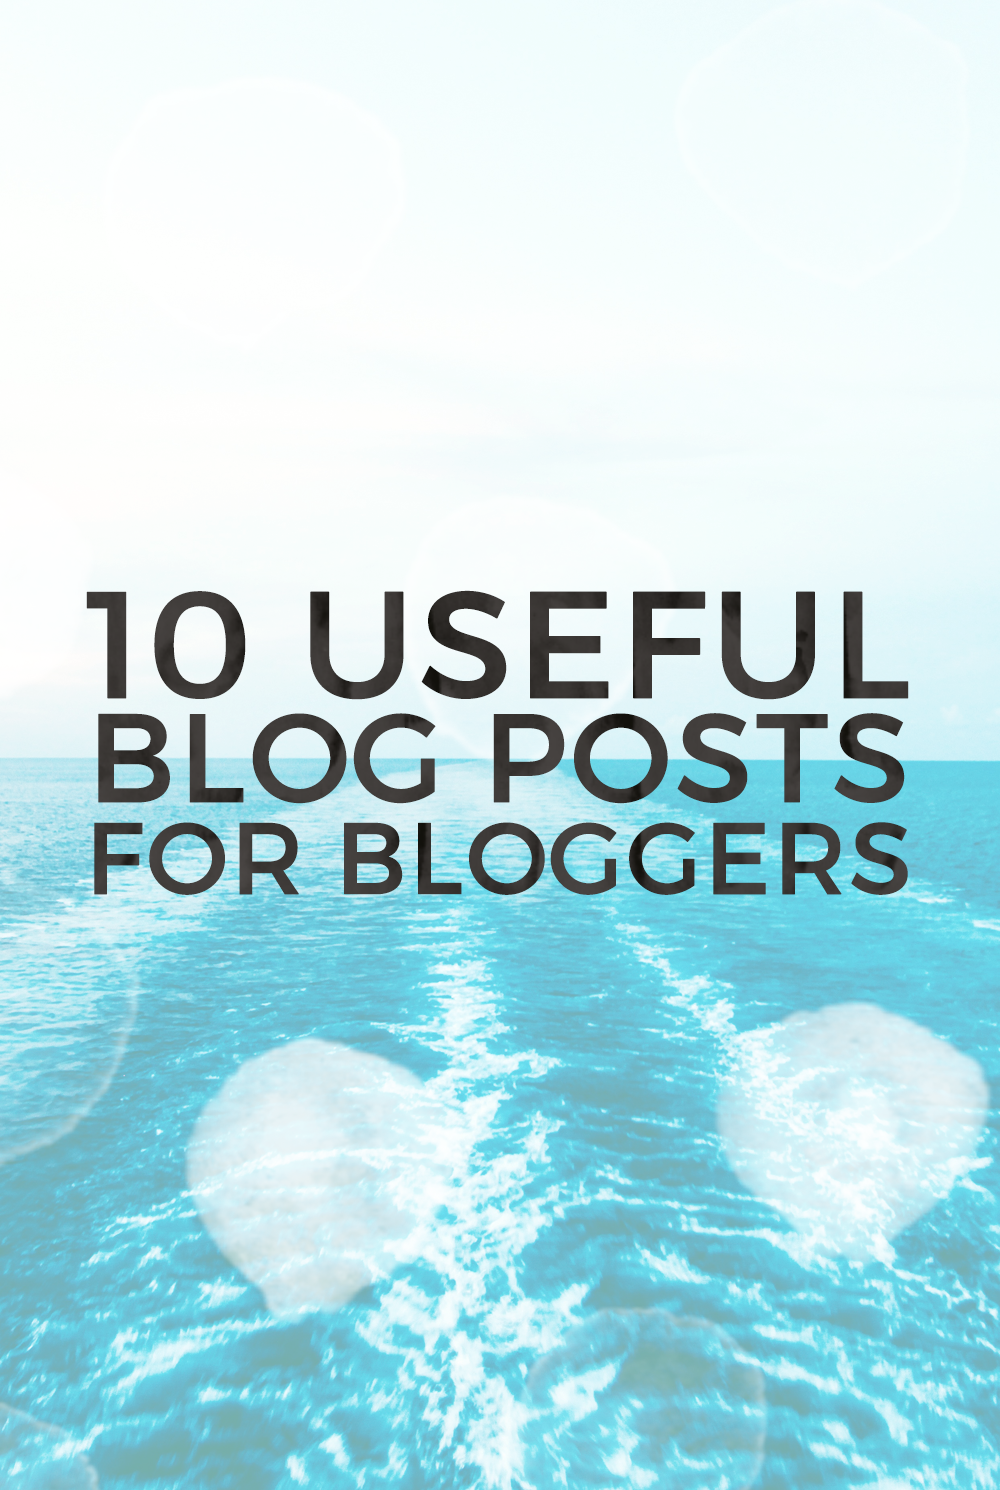 10 USEFUL BLOG POSTS FOR BLOGGERS